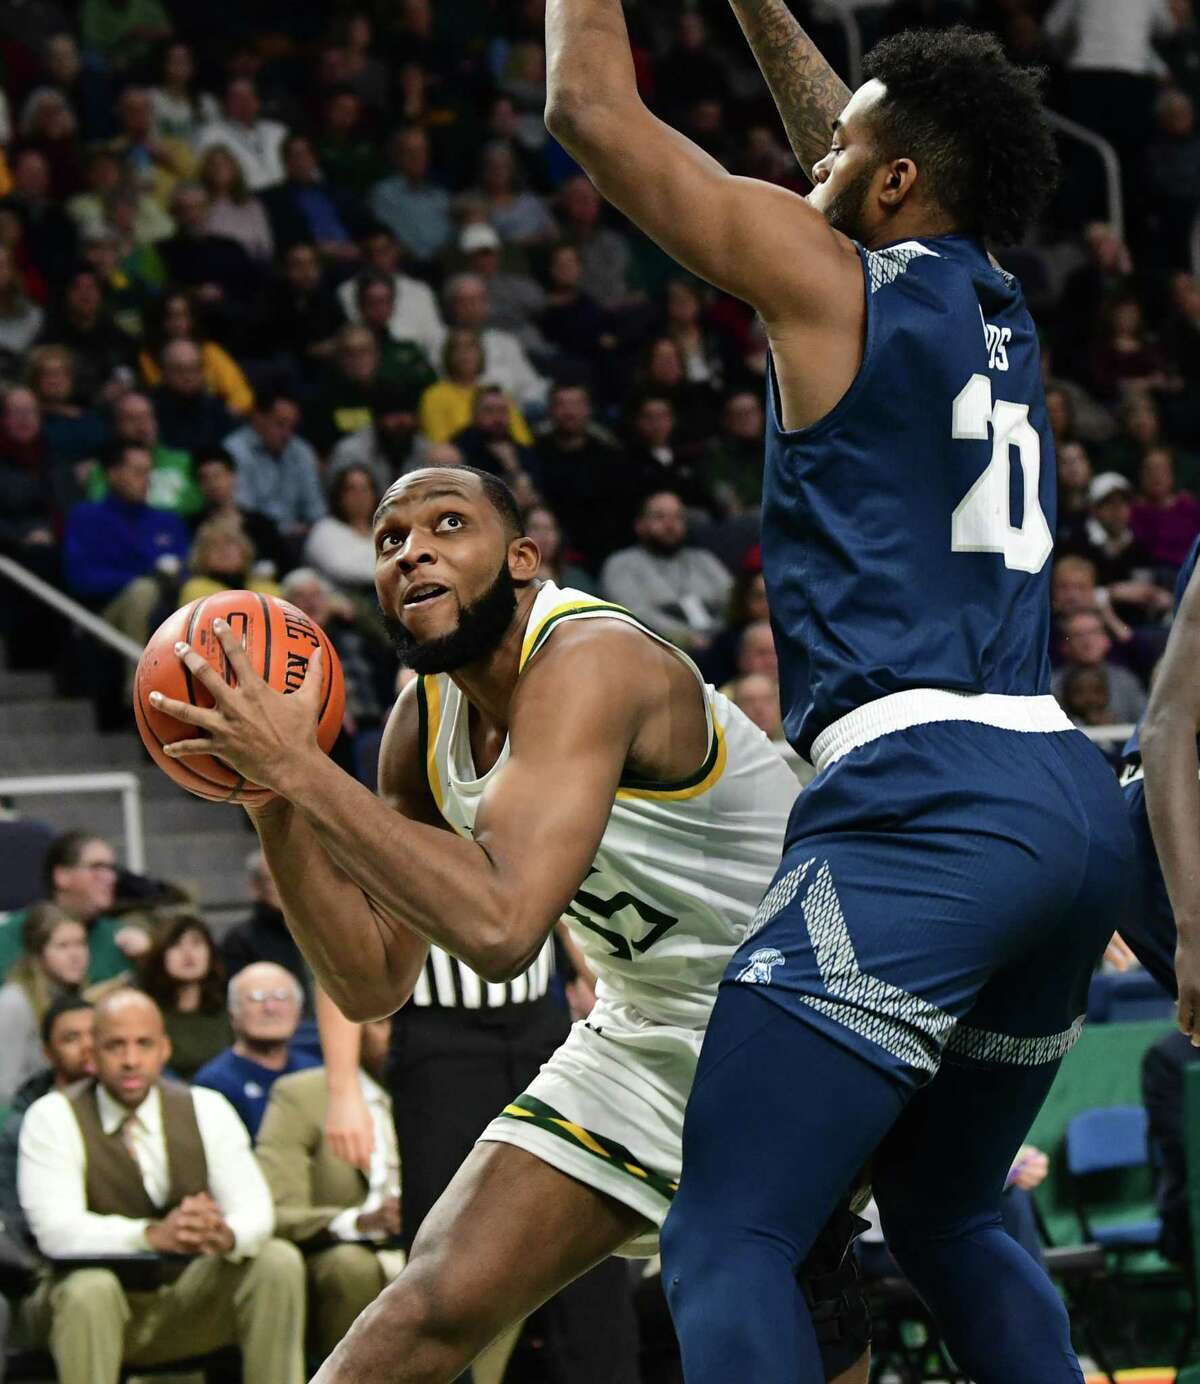 Siena's Sammy Friday drives to the basket during a game against Saint Peter's at the Times Union Center on Thursday, Jan. 9, 2020 in Albany, N.Y. (Lori Van Buren/Times Union)